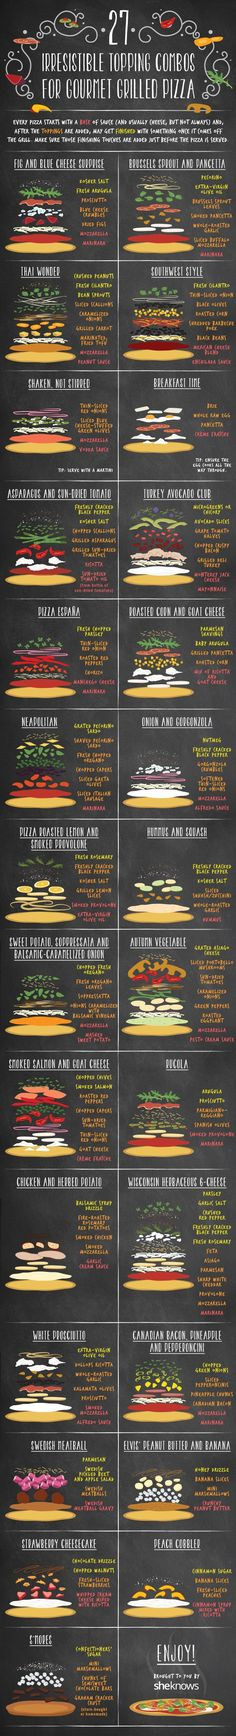 Here are 27 irresistible topping combos for grilled pizza. If you are a pizza lover be sure to check out these topping combos for grilled pizza. Comida Pizza, Grilled Pizza, Grilled Cheeses, Homemade Pie, Pizza Party, Pizza Dough, Pizza Pizza, Pizza 101, Pizza Ovens